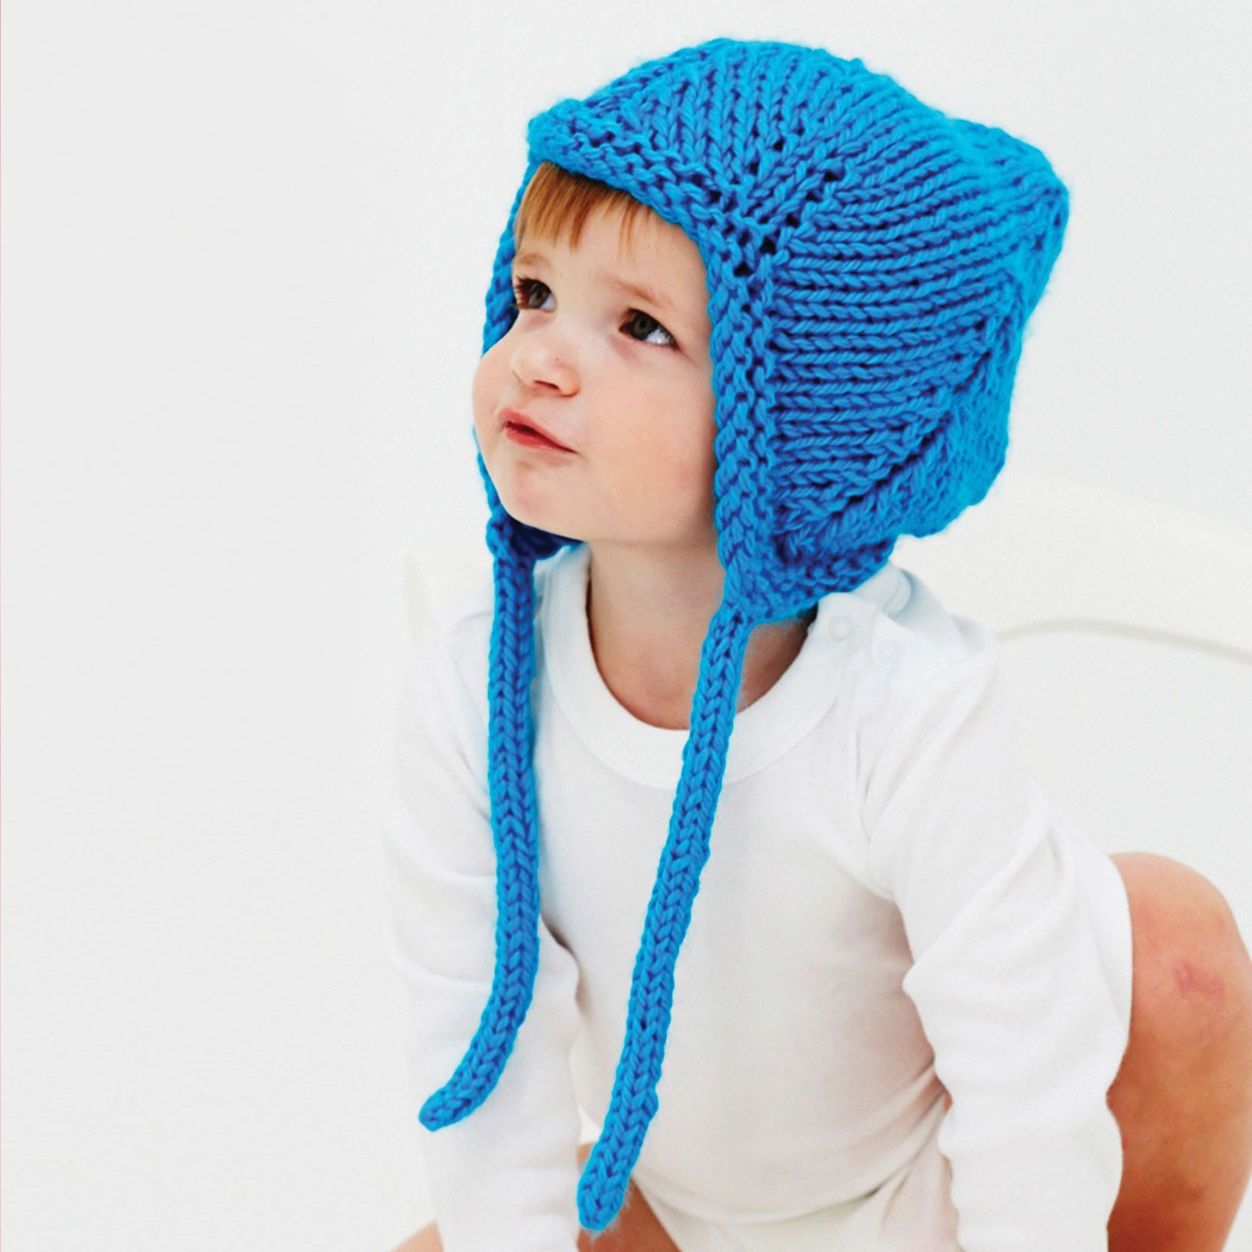 Free-knitting-pattern-for-a-baby-hat-with-ear-flaps ...